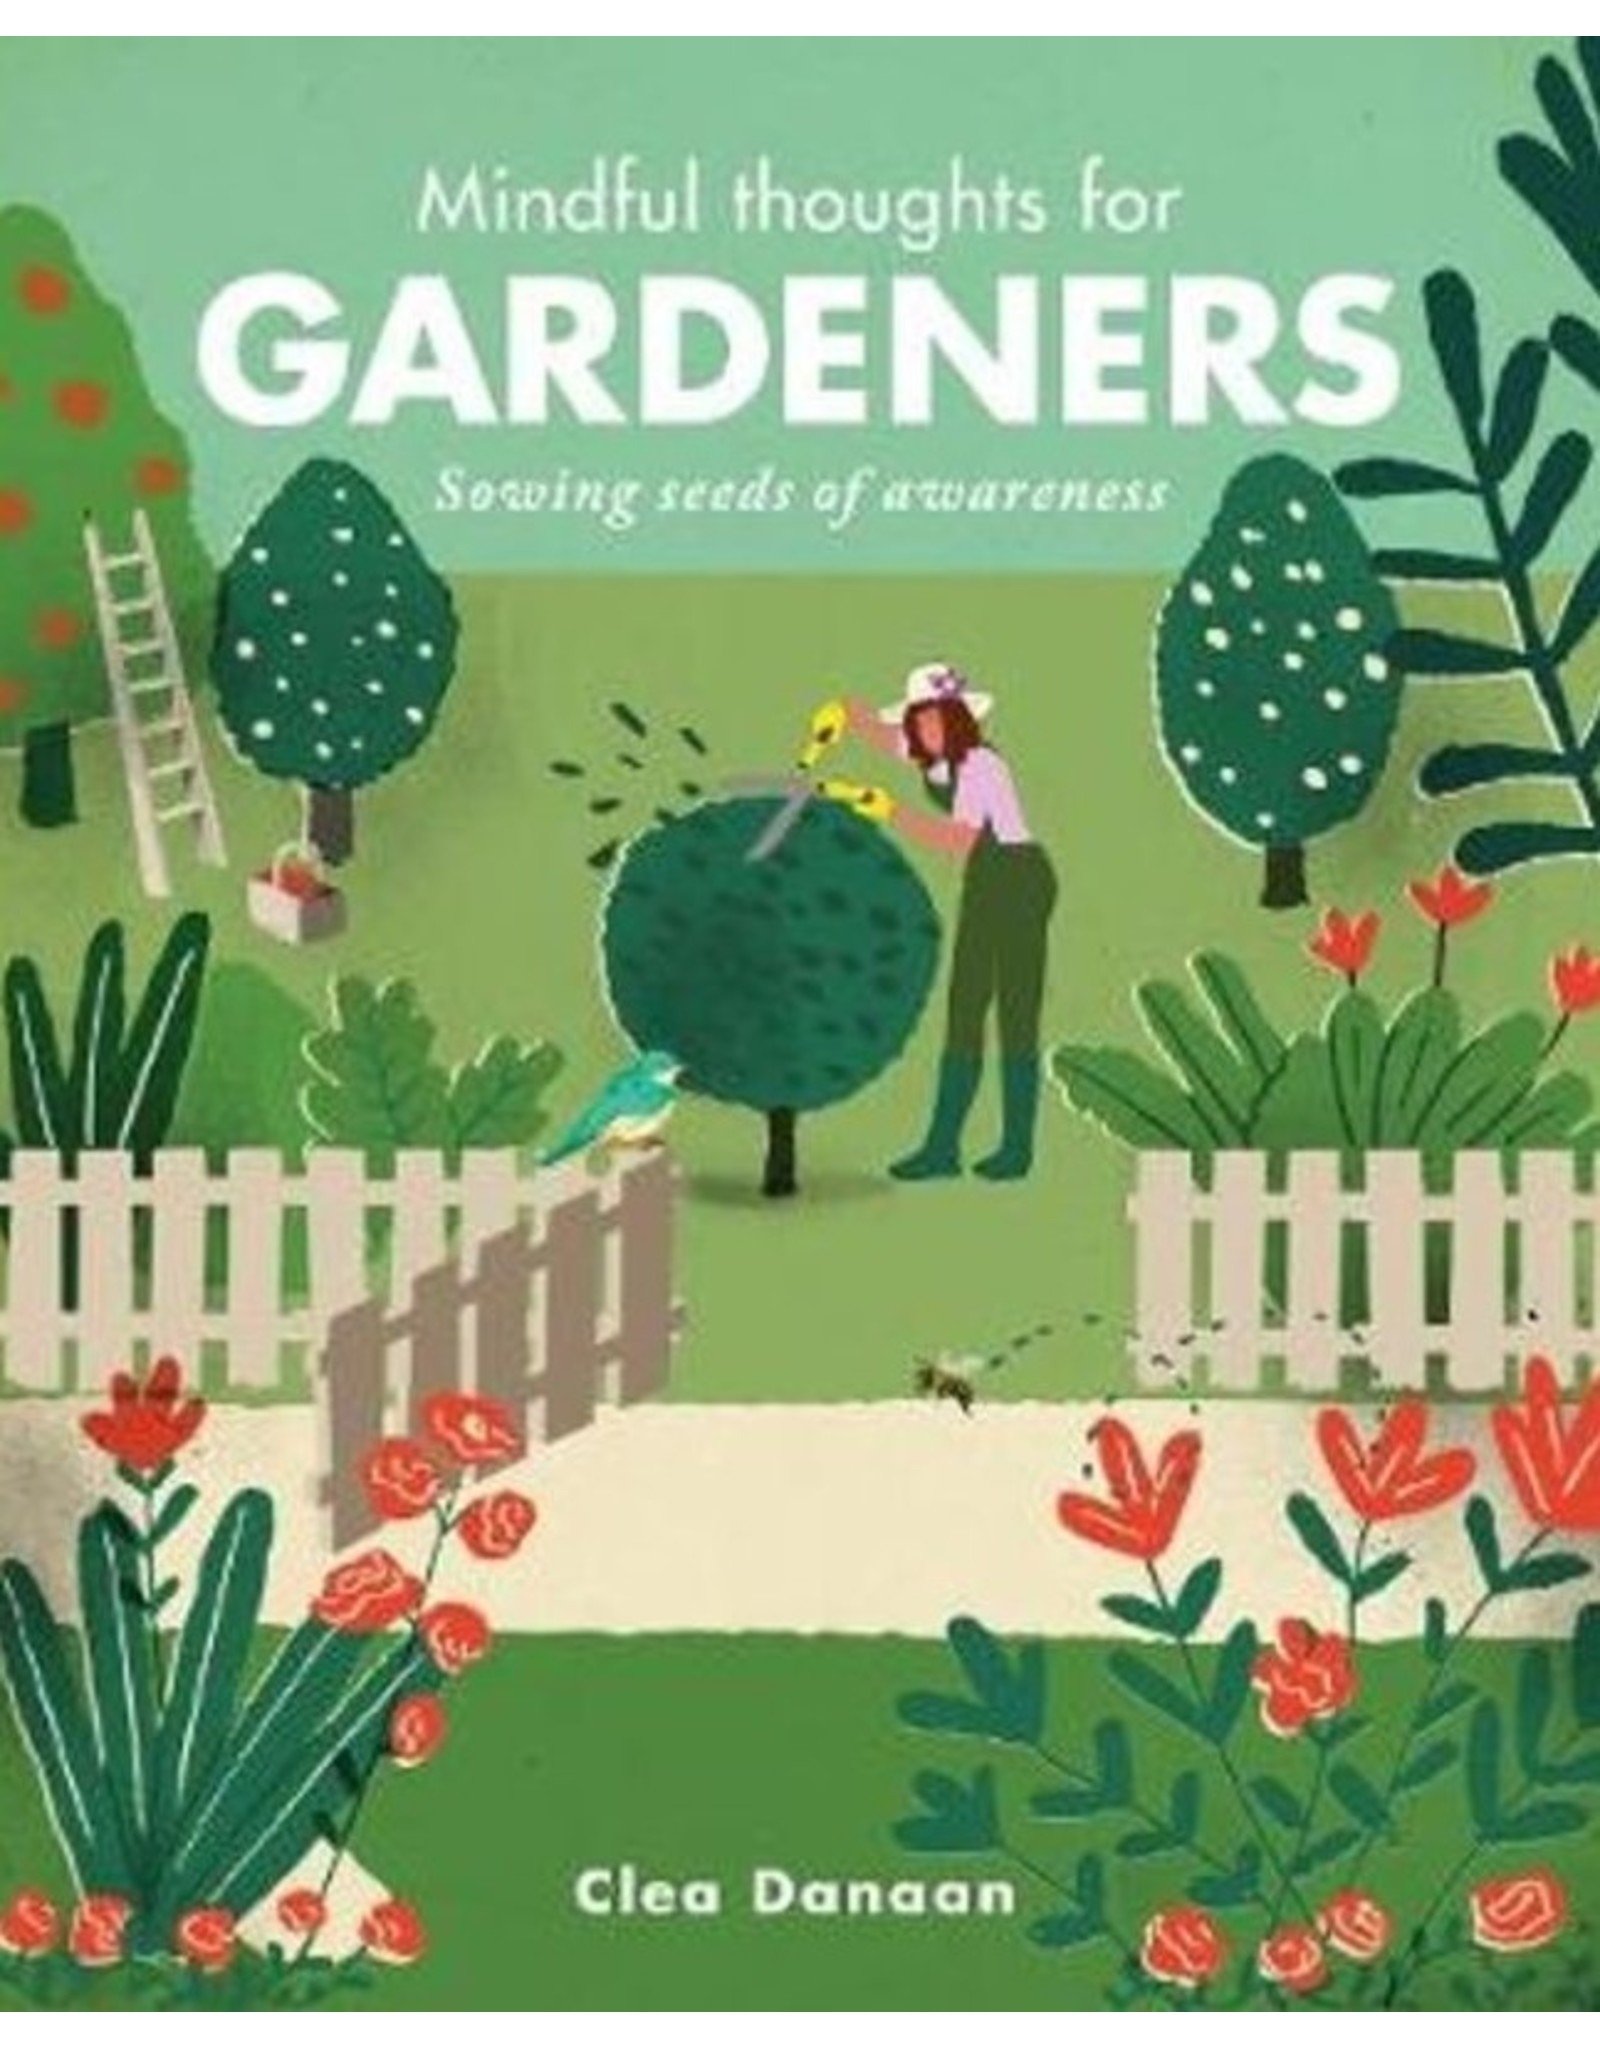 Mindful Thoughts for Gardeners by Clea Danaan